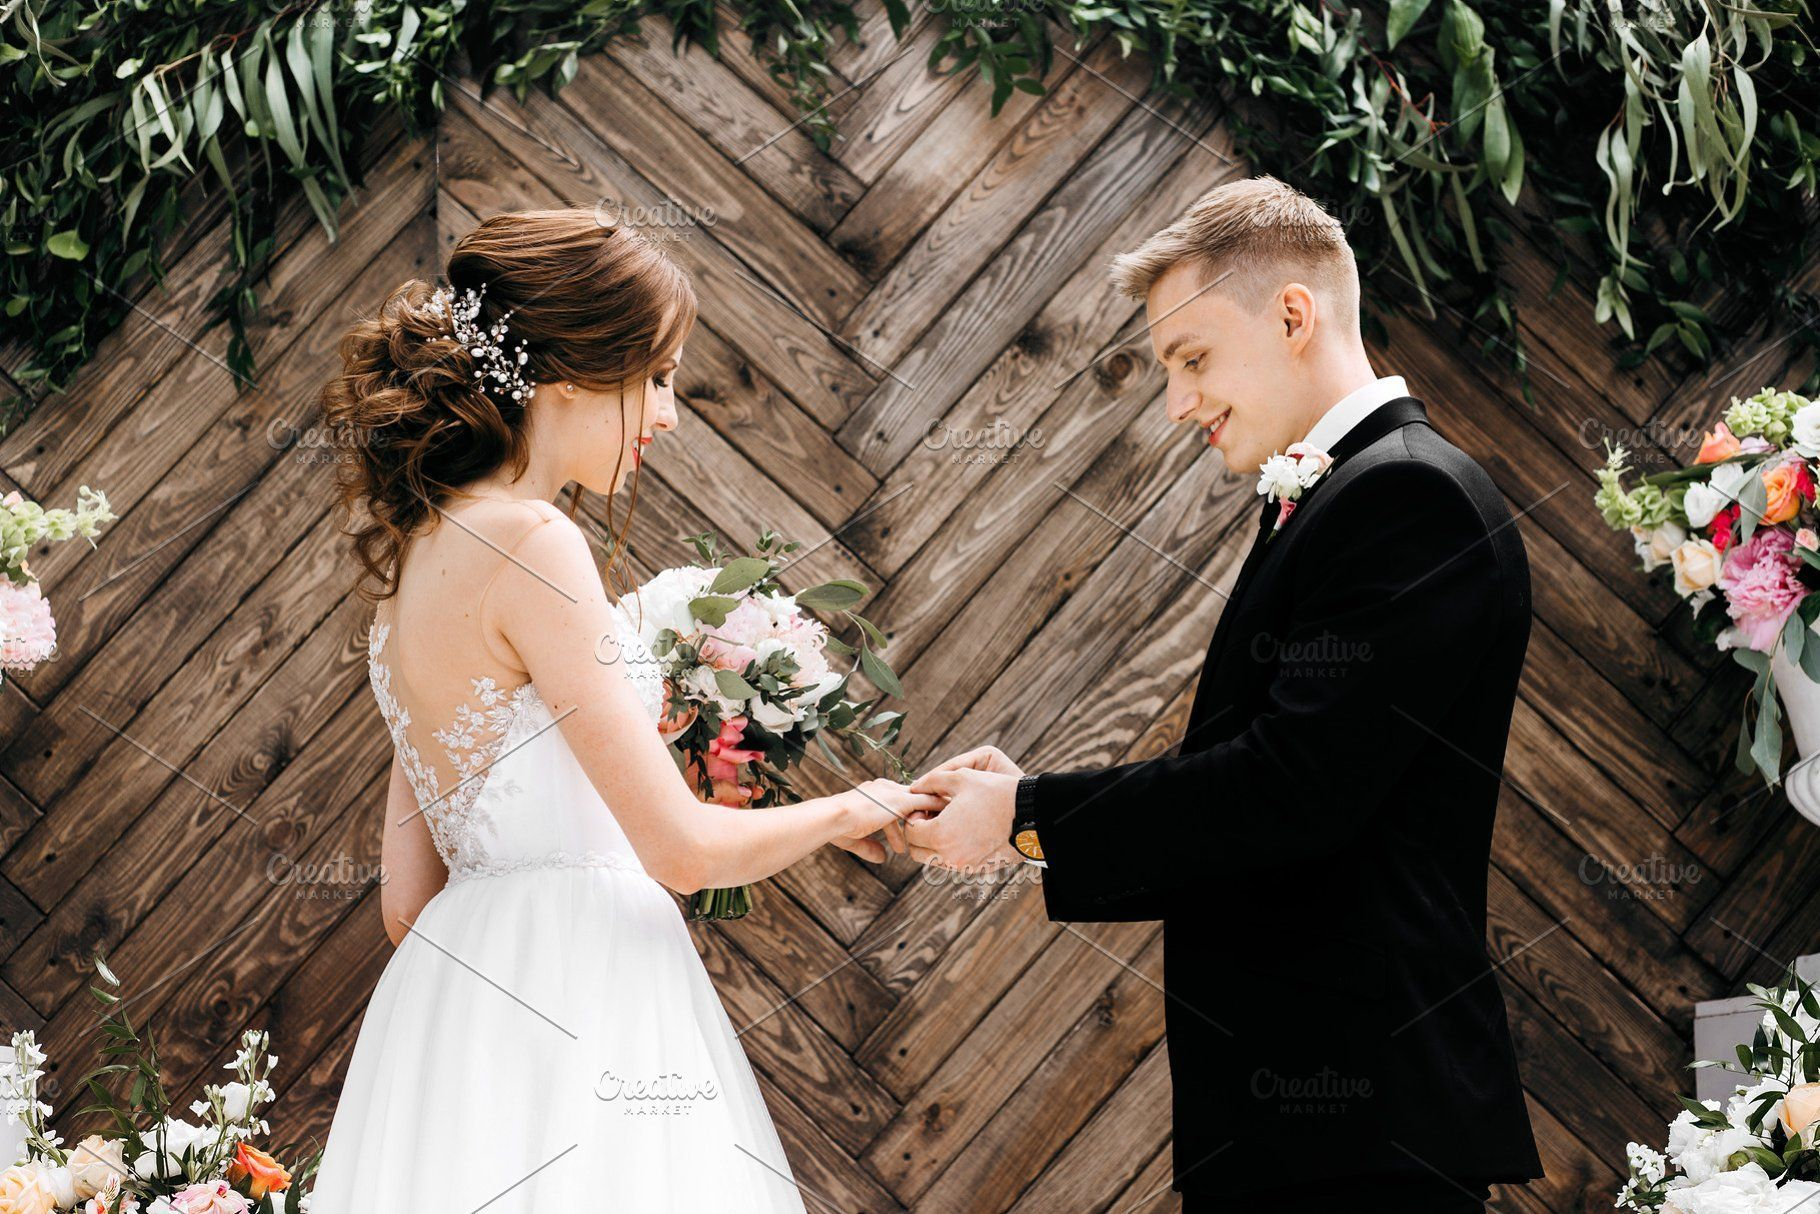 Awesome Wedding Couple On Ceremony In 2020 Wedding Couples Fun Wedding Wedding Ceremony Decorations